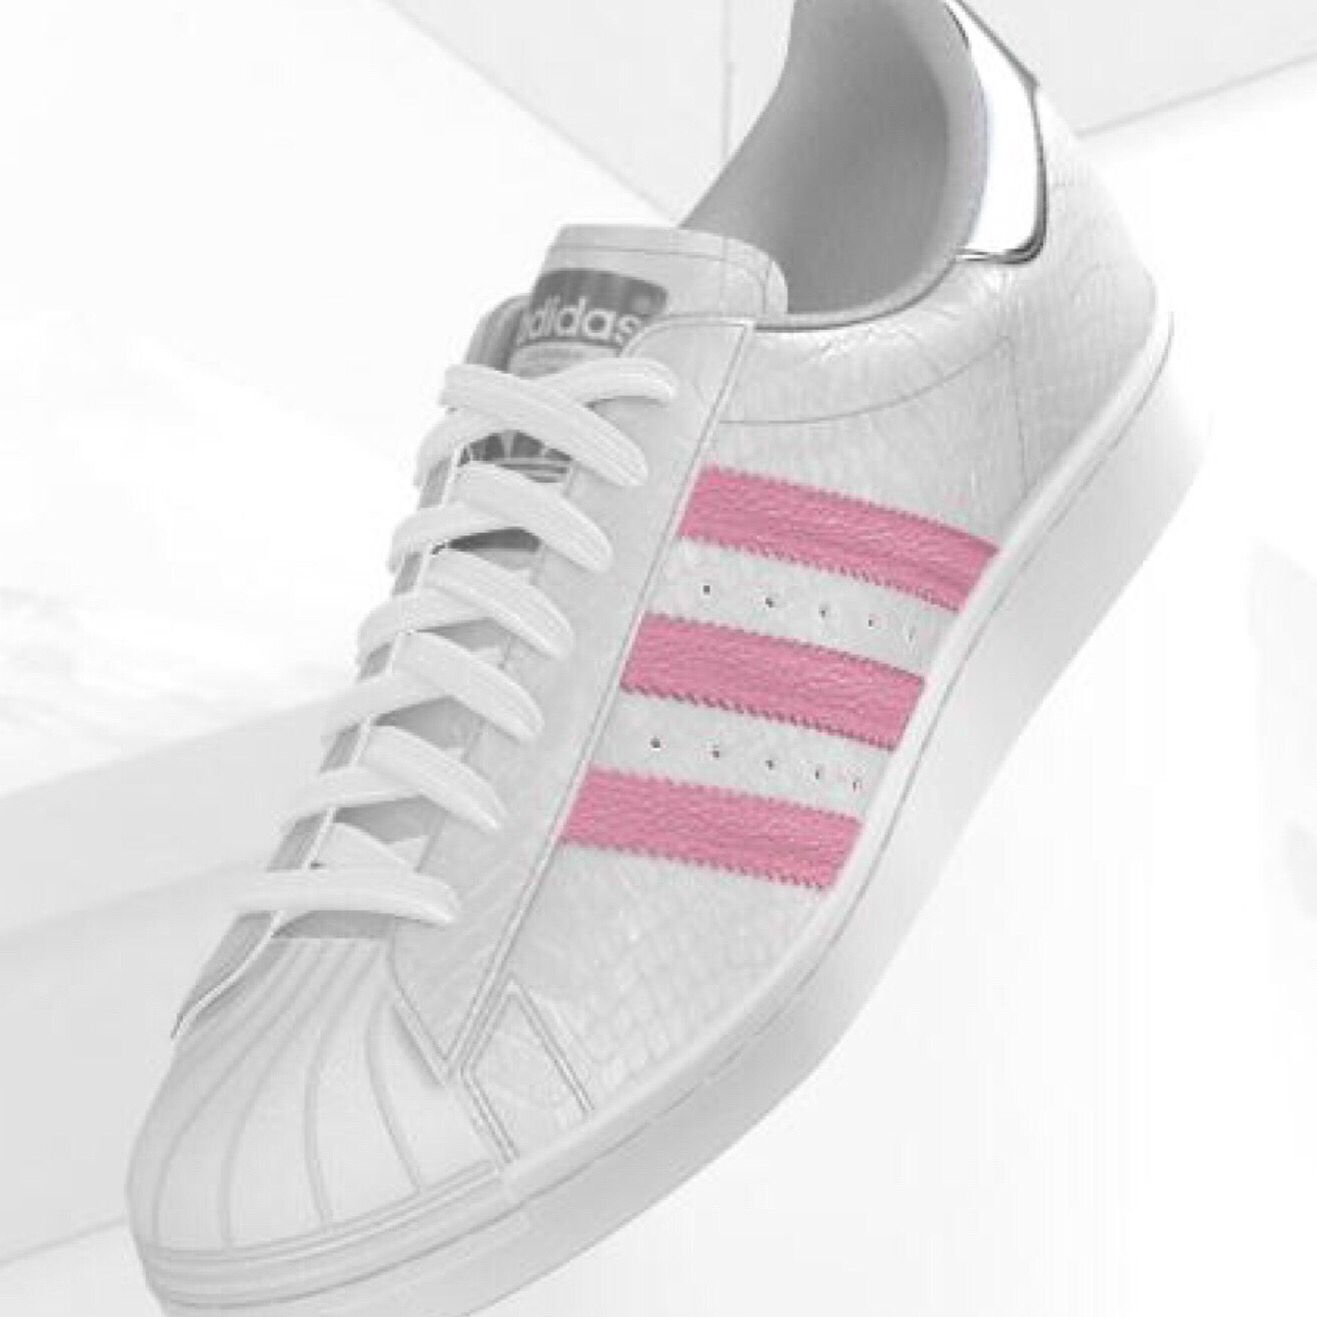 mi adidas Superstar white croco pink stripes metallic silver